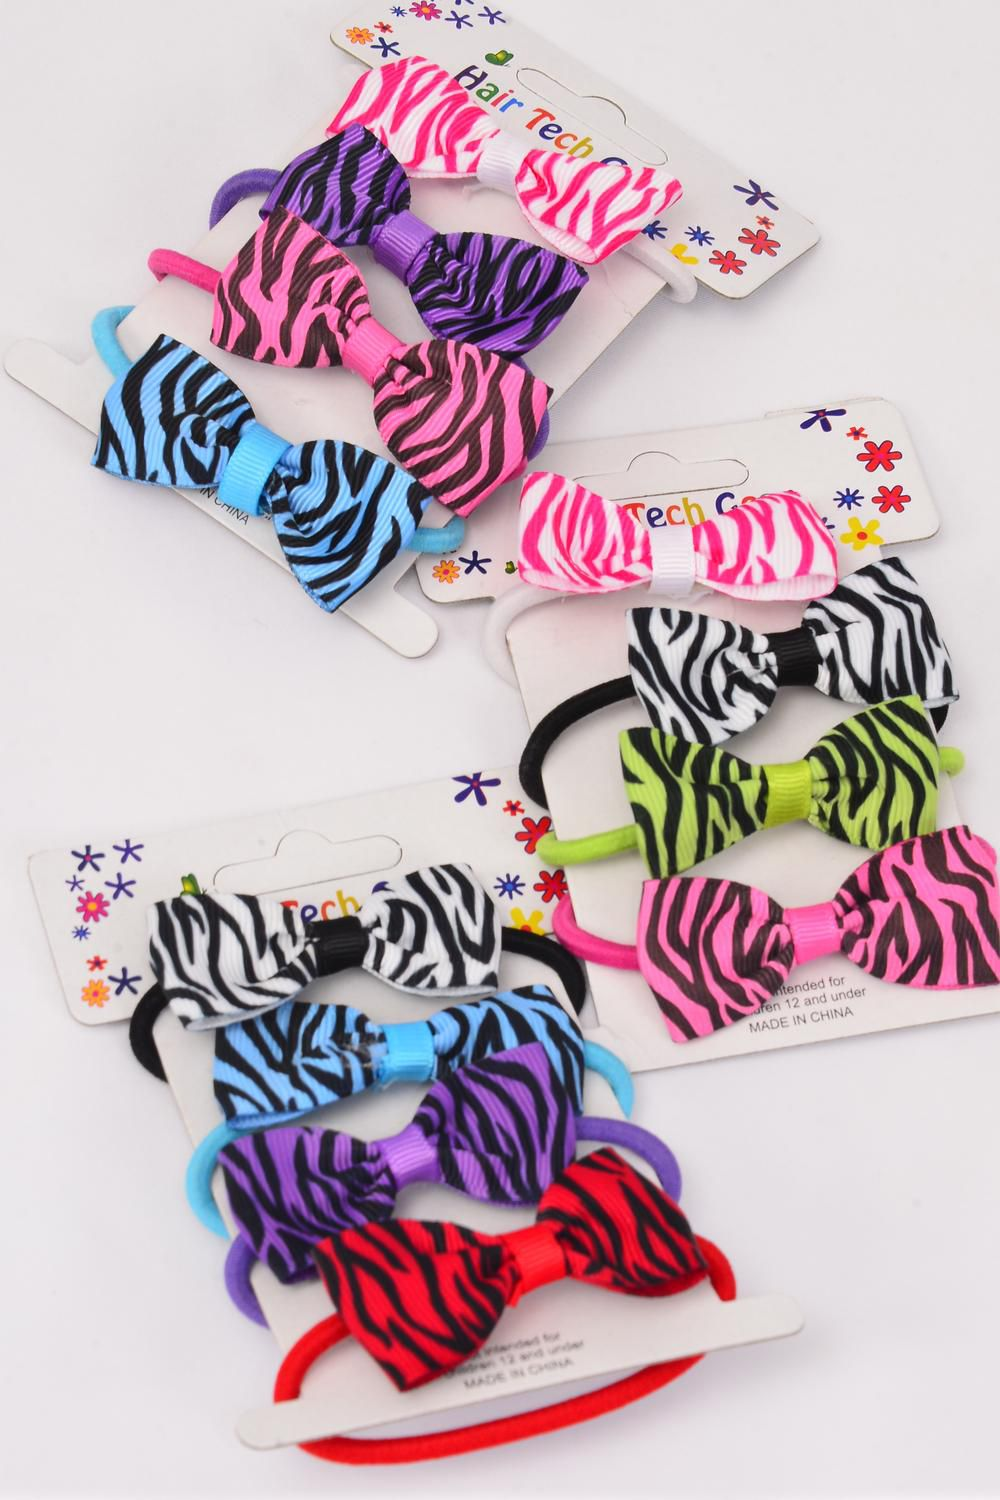 "Elastic Terry Hair Ties Grosgrain Bow-tie 4 pcs Zebra Multi/DZ **Elastic** Bow-tie Size-2""x 1"" Wide,4 of each Color Mix,Individual OPP Bag & UPC code,4pecs per Card,12 Card=Dozen"